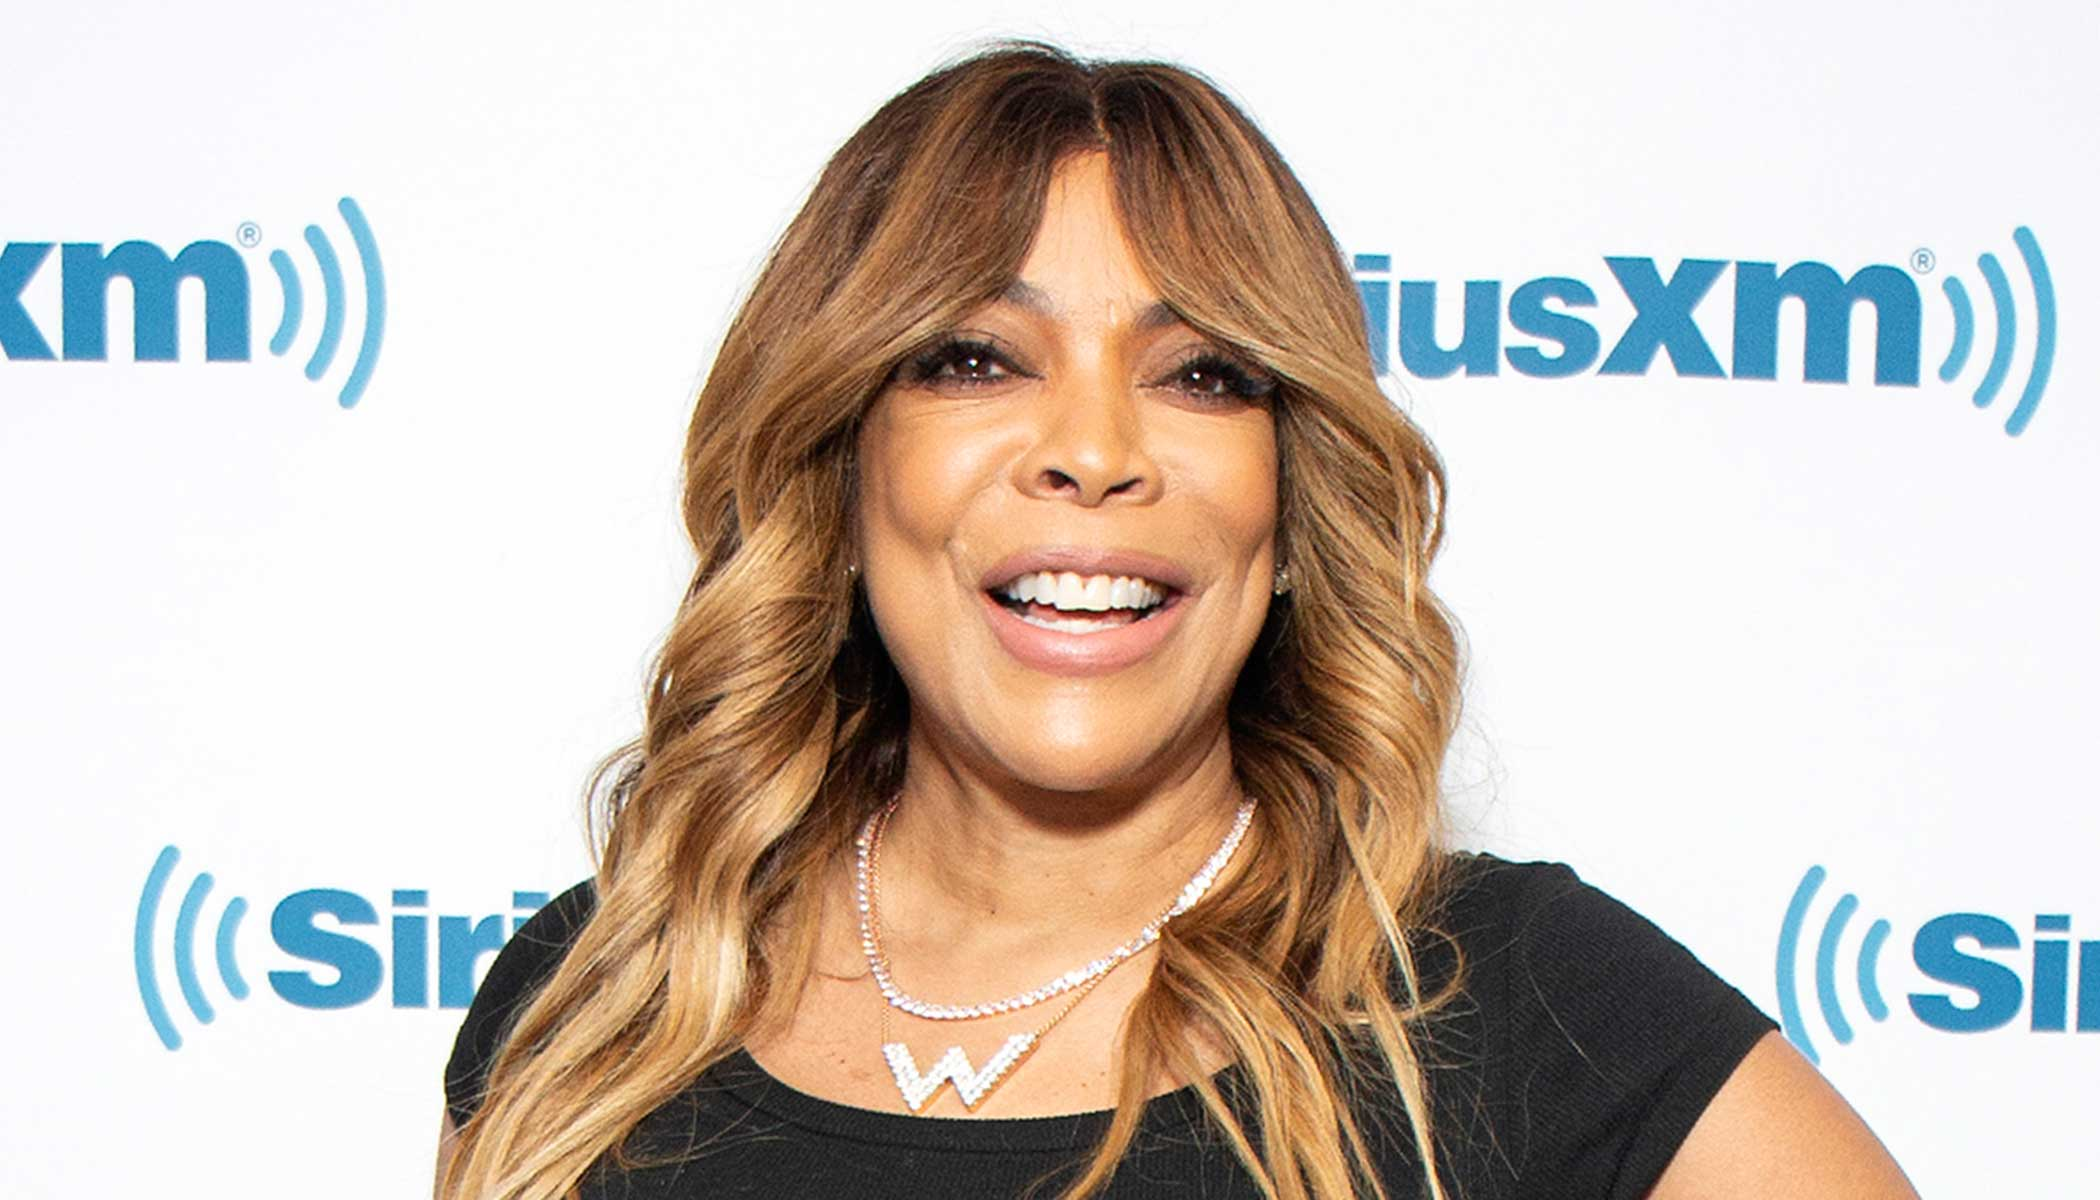 Wendy Williams Talks About Her One Night Stand With Method Man